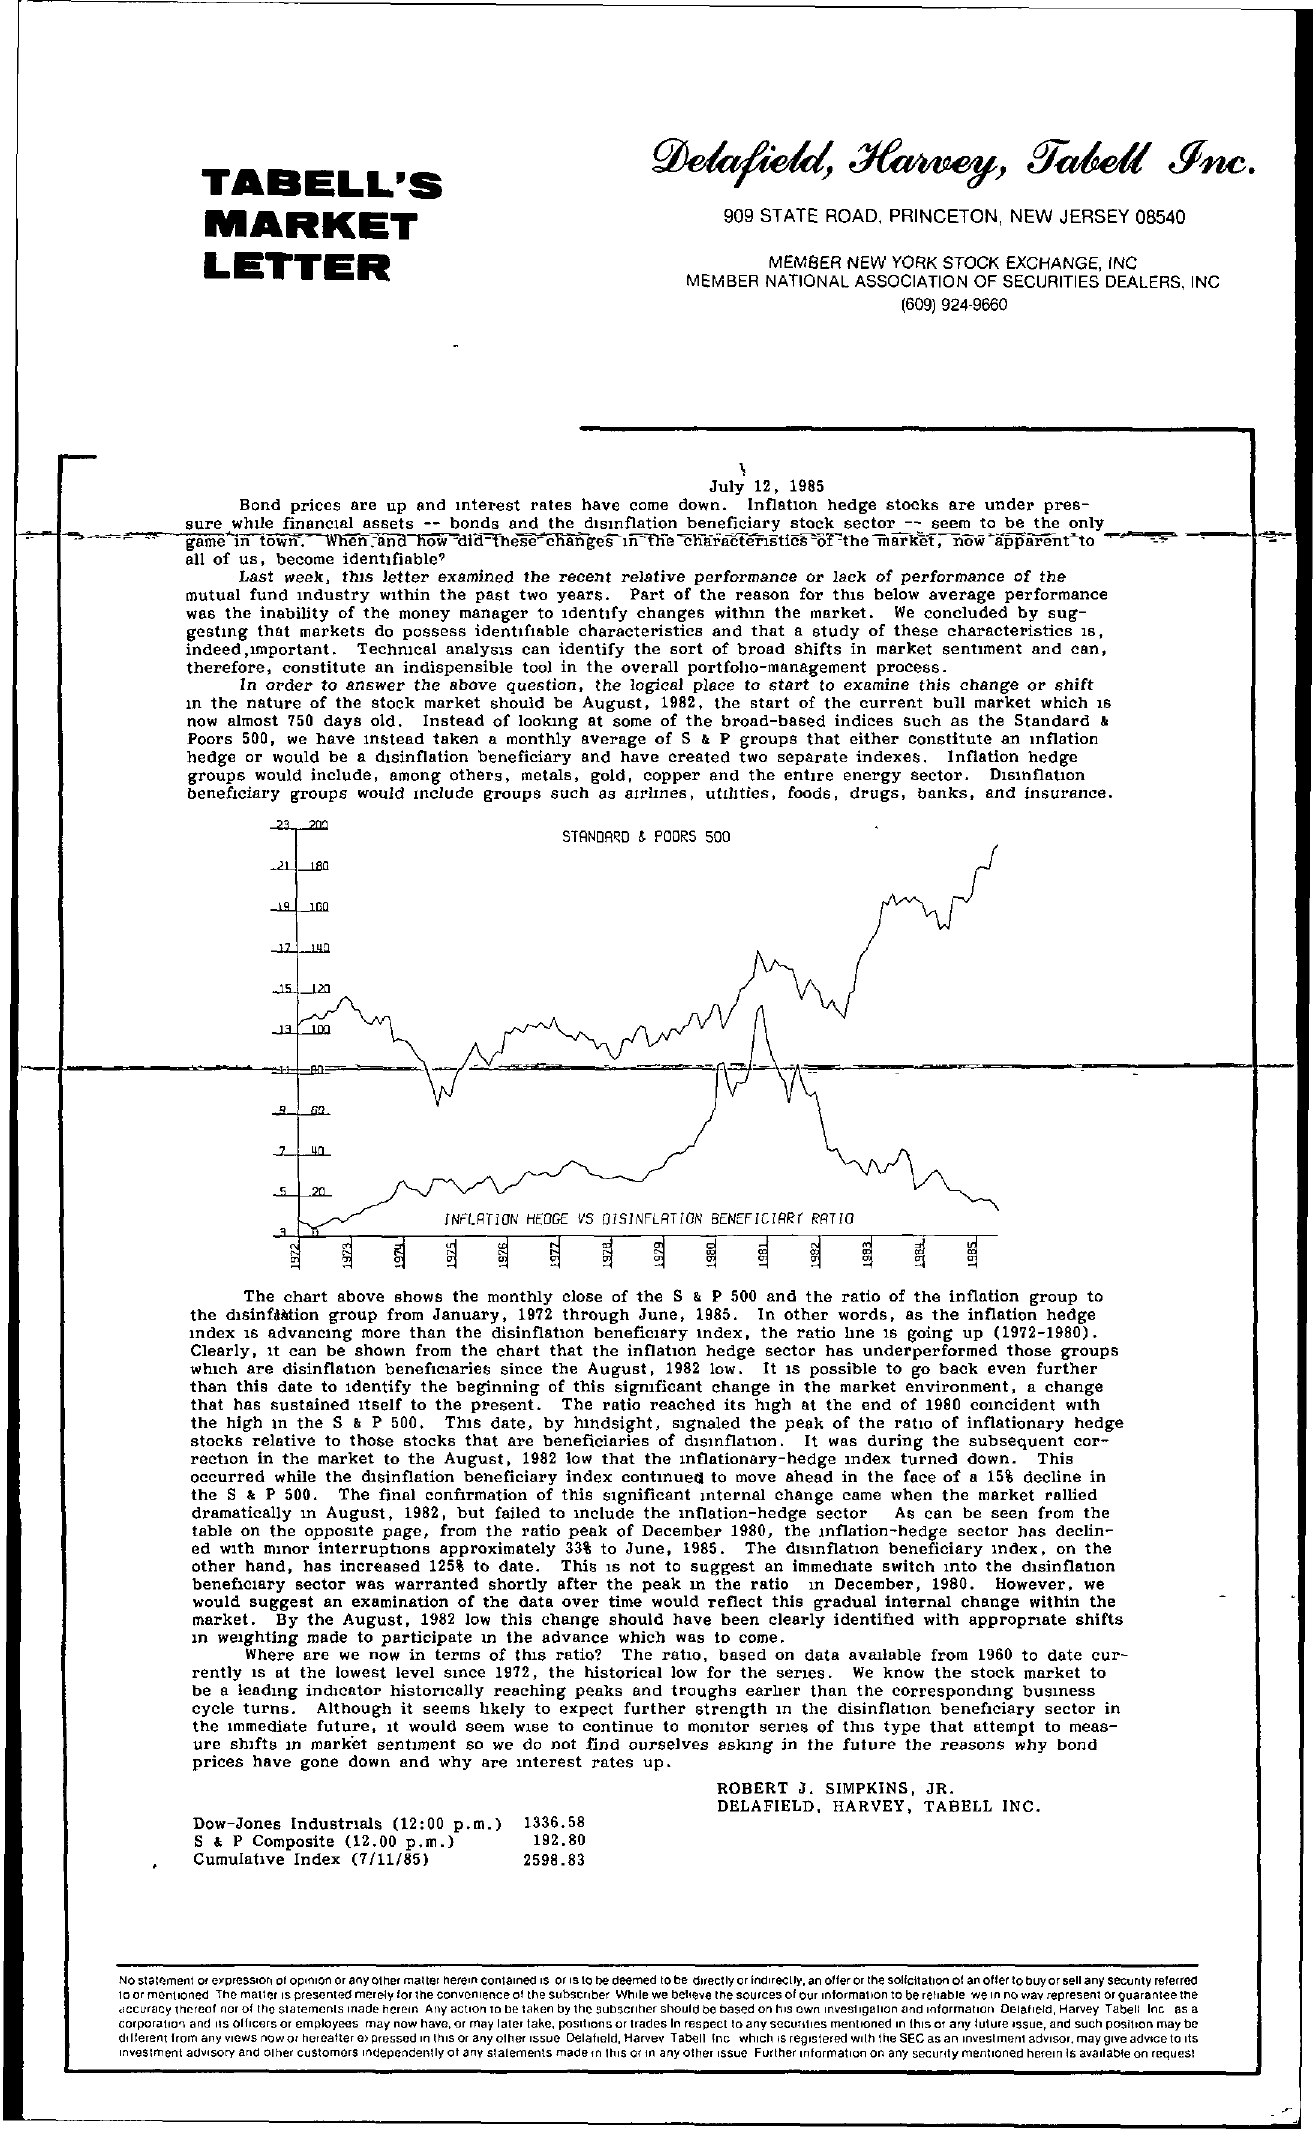 Tabell's Market Letter - July 12, 1985 page 1